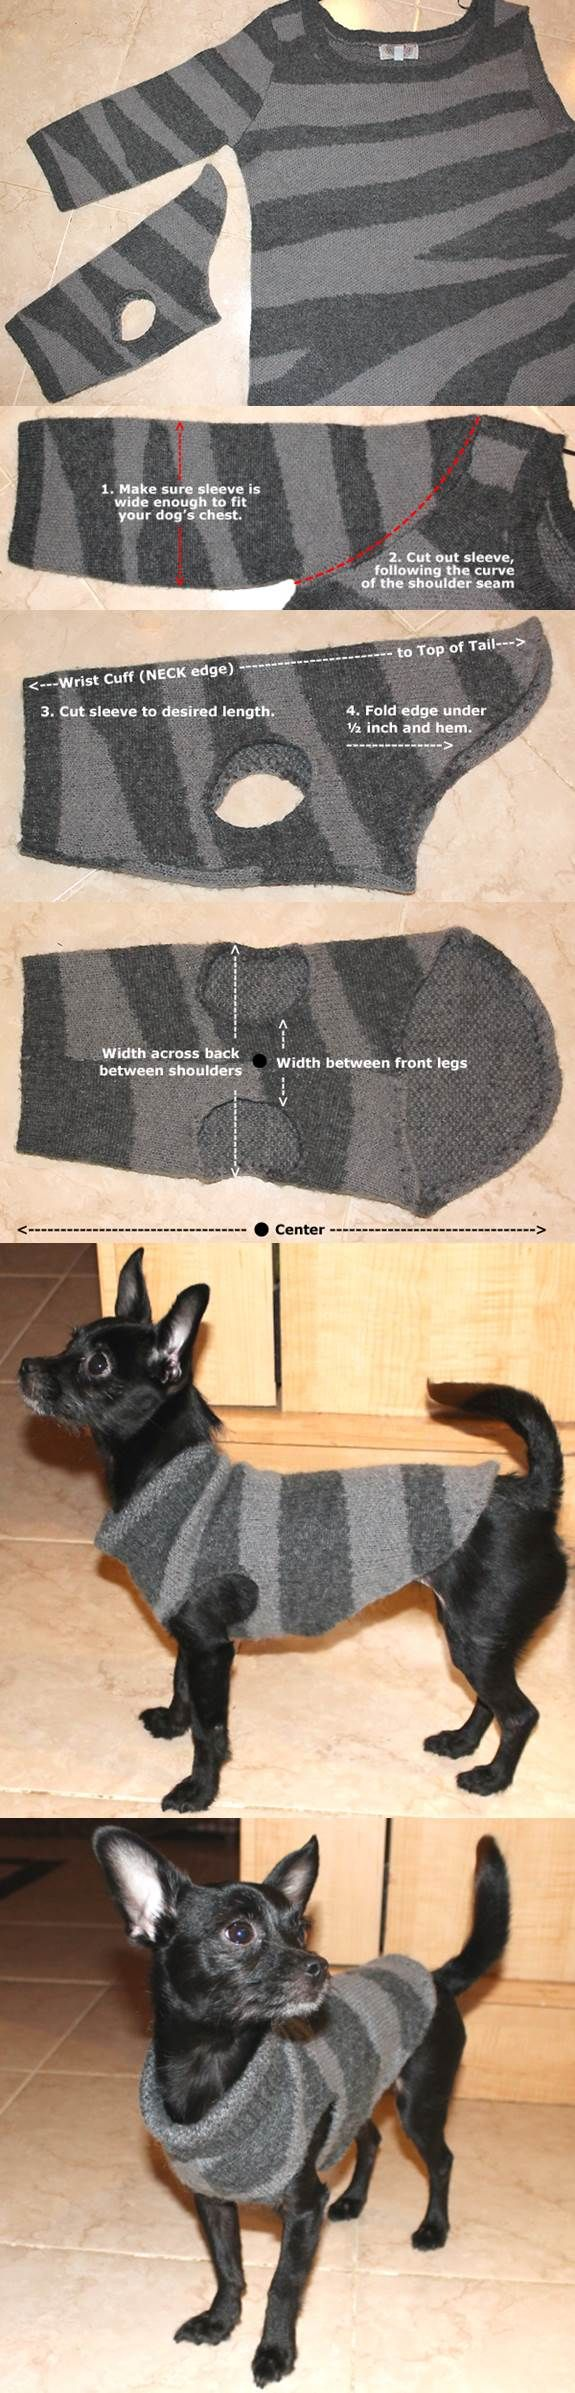 DIY Dog Sweater from a Used Sweater Sleeve 2